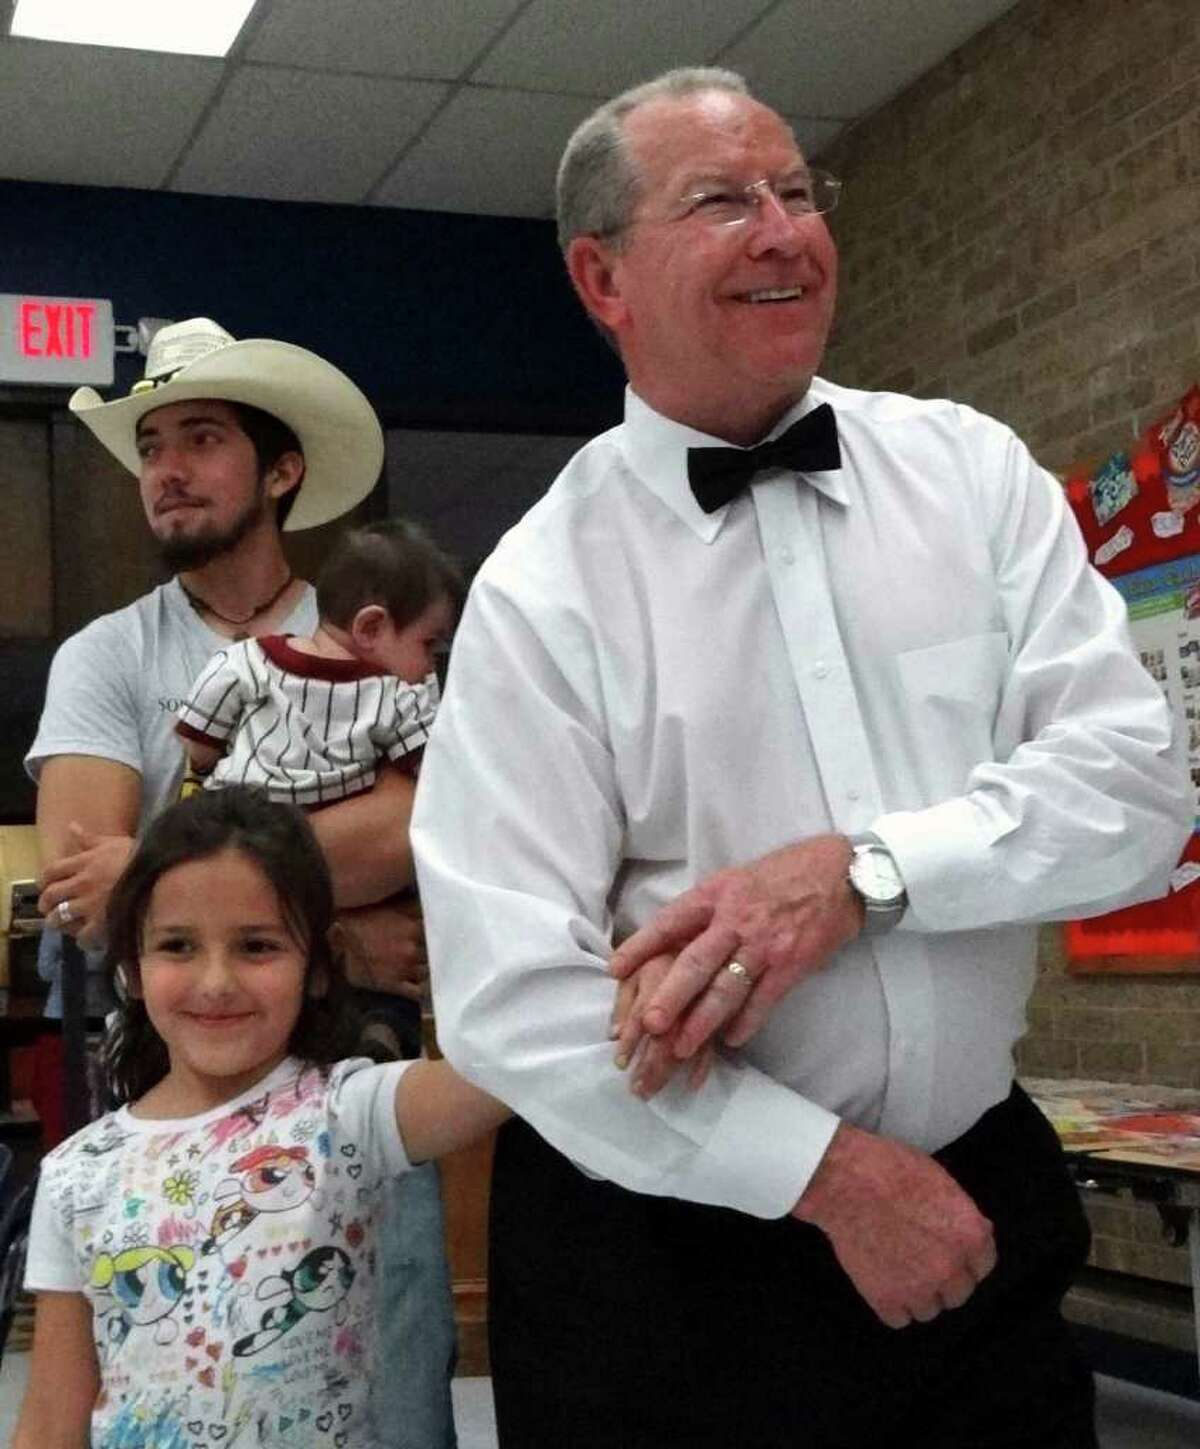 Merrill Ramsey, principal of Pecan Valley Elementary School, escorts Joey Edenfield, 7, to her chair during the